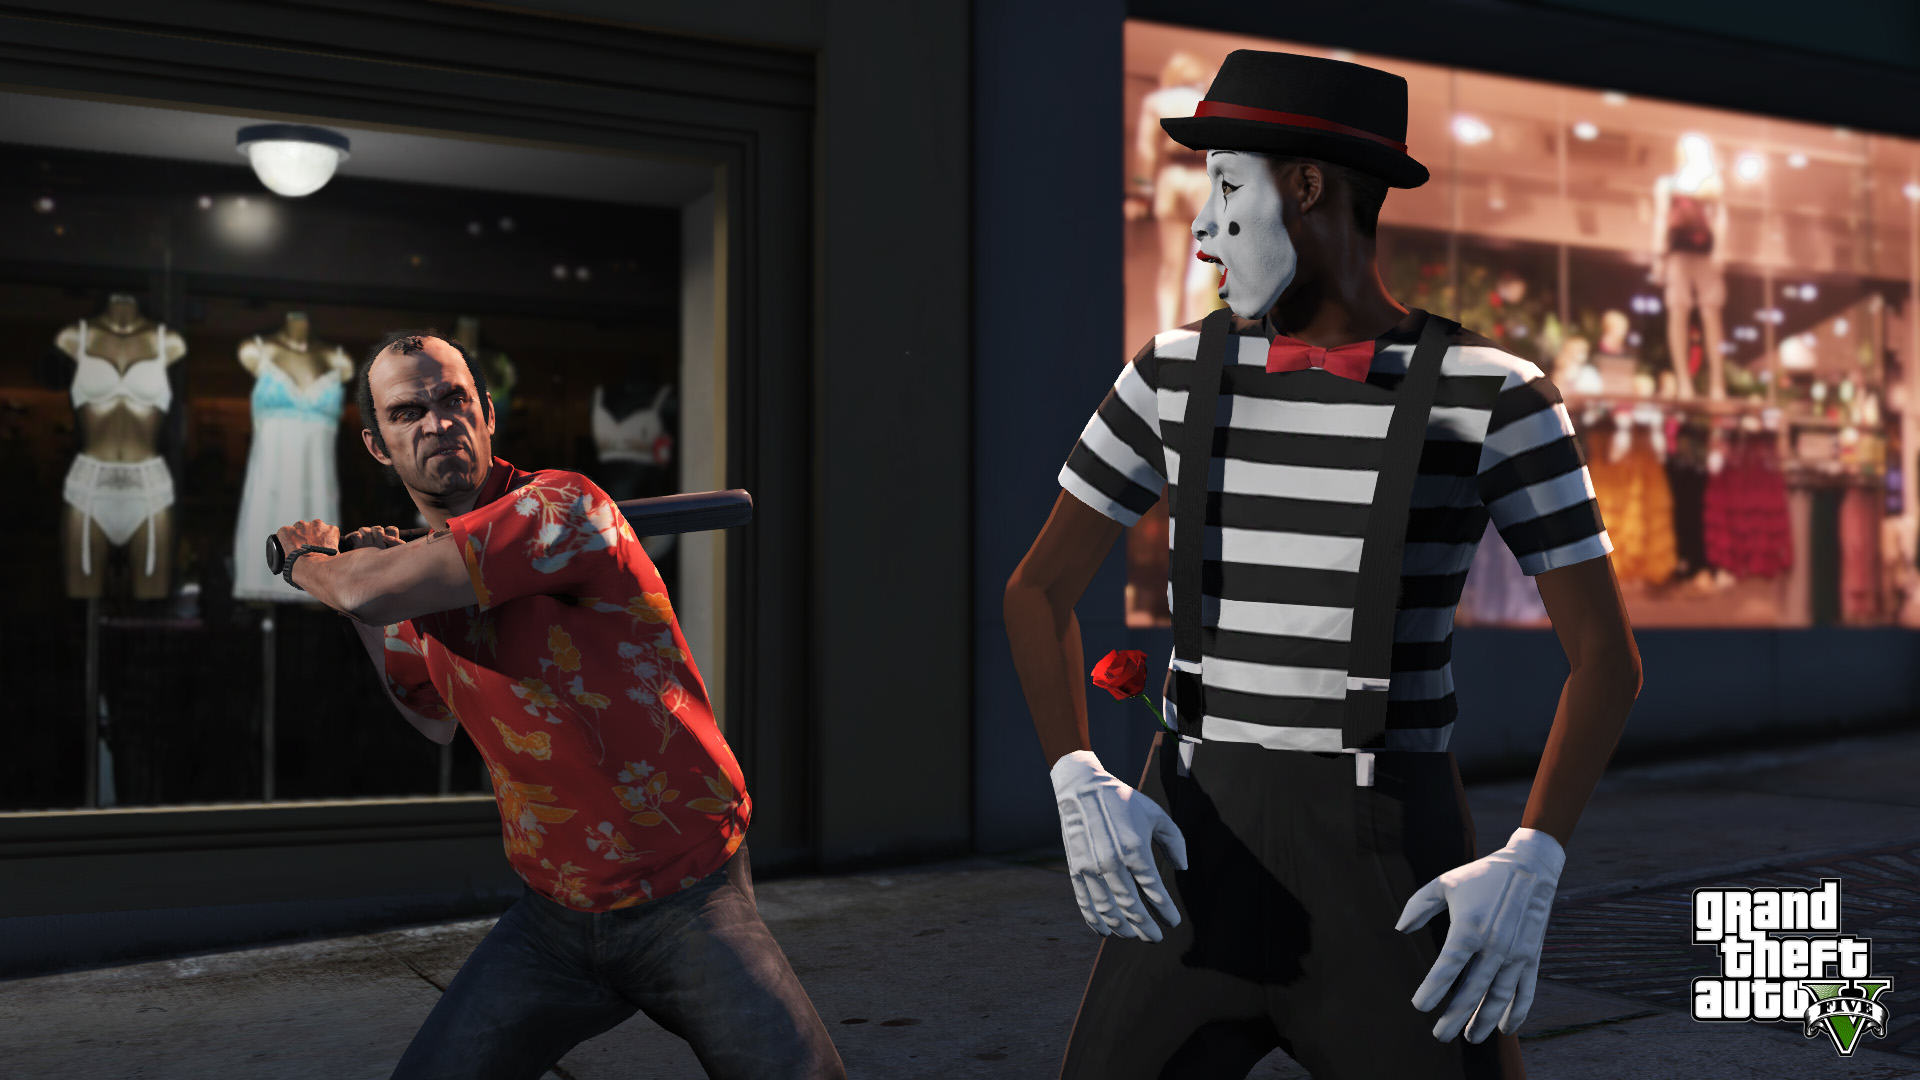 GTA V Publishers Explain Why They Dont Release Games Every Year UNILAD gtav details09122014 014577